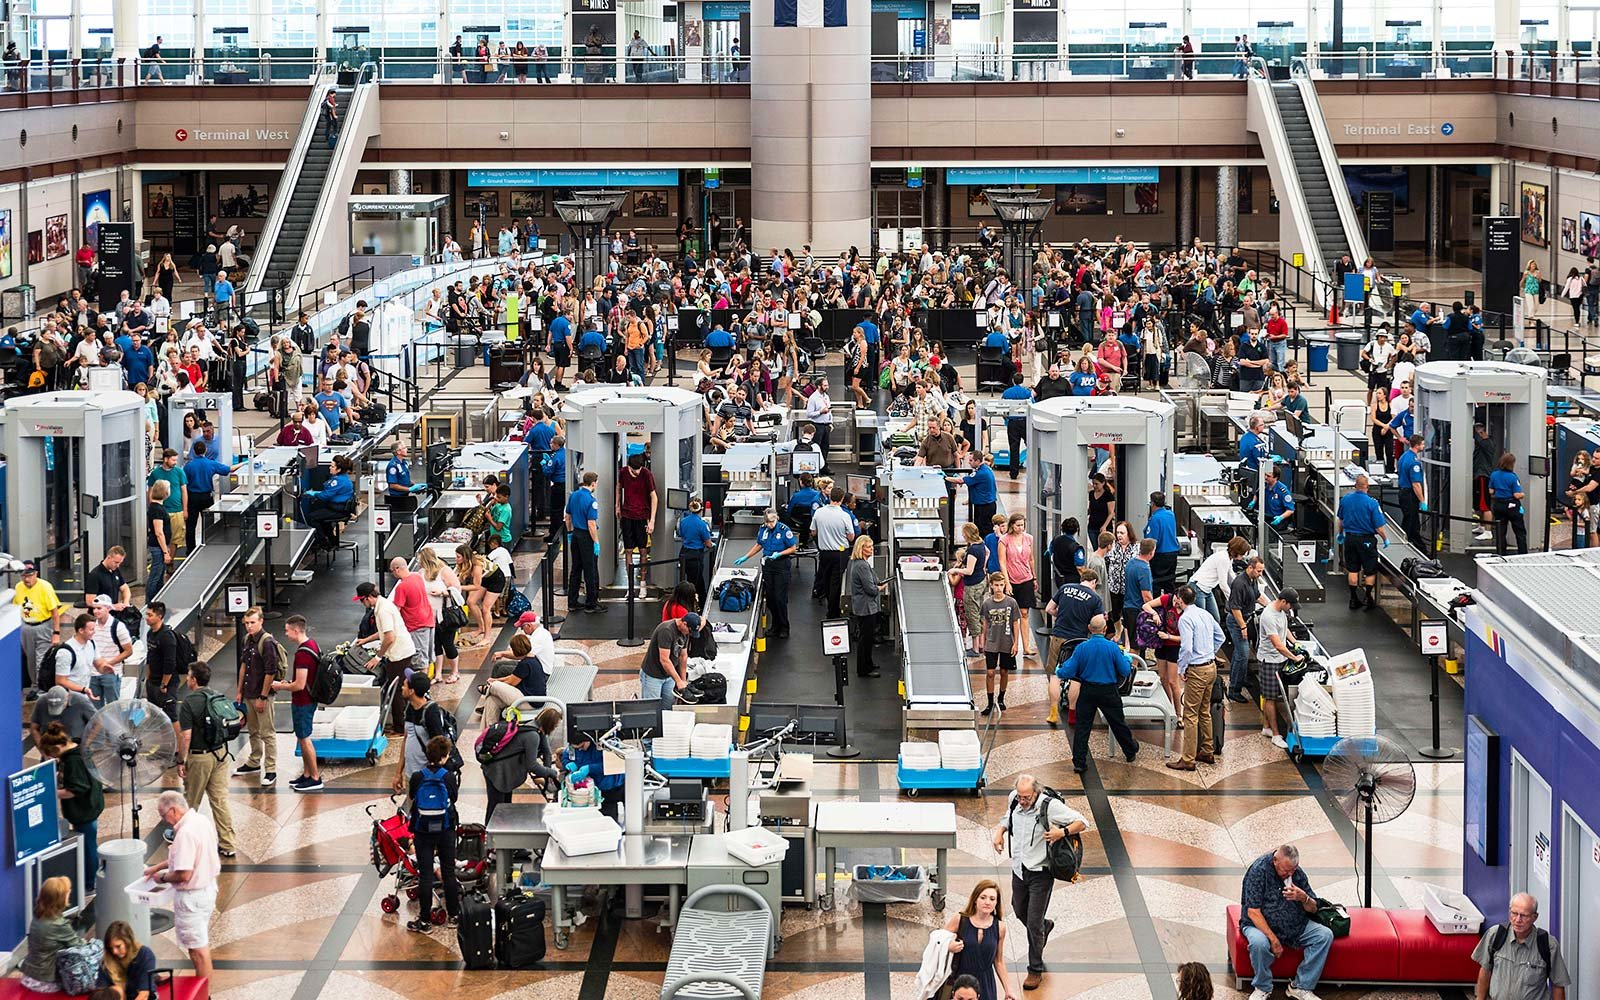 TSA Security checkpoint line Denver airport biometrics